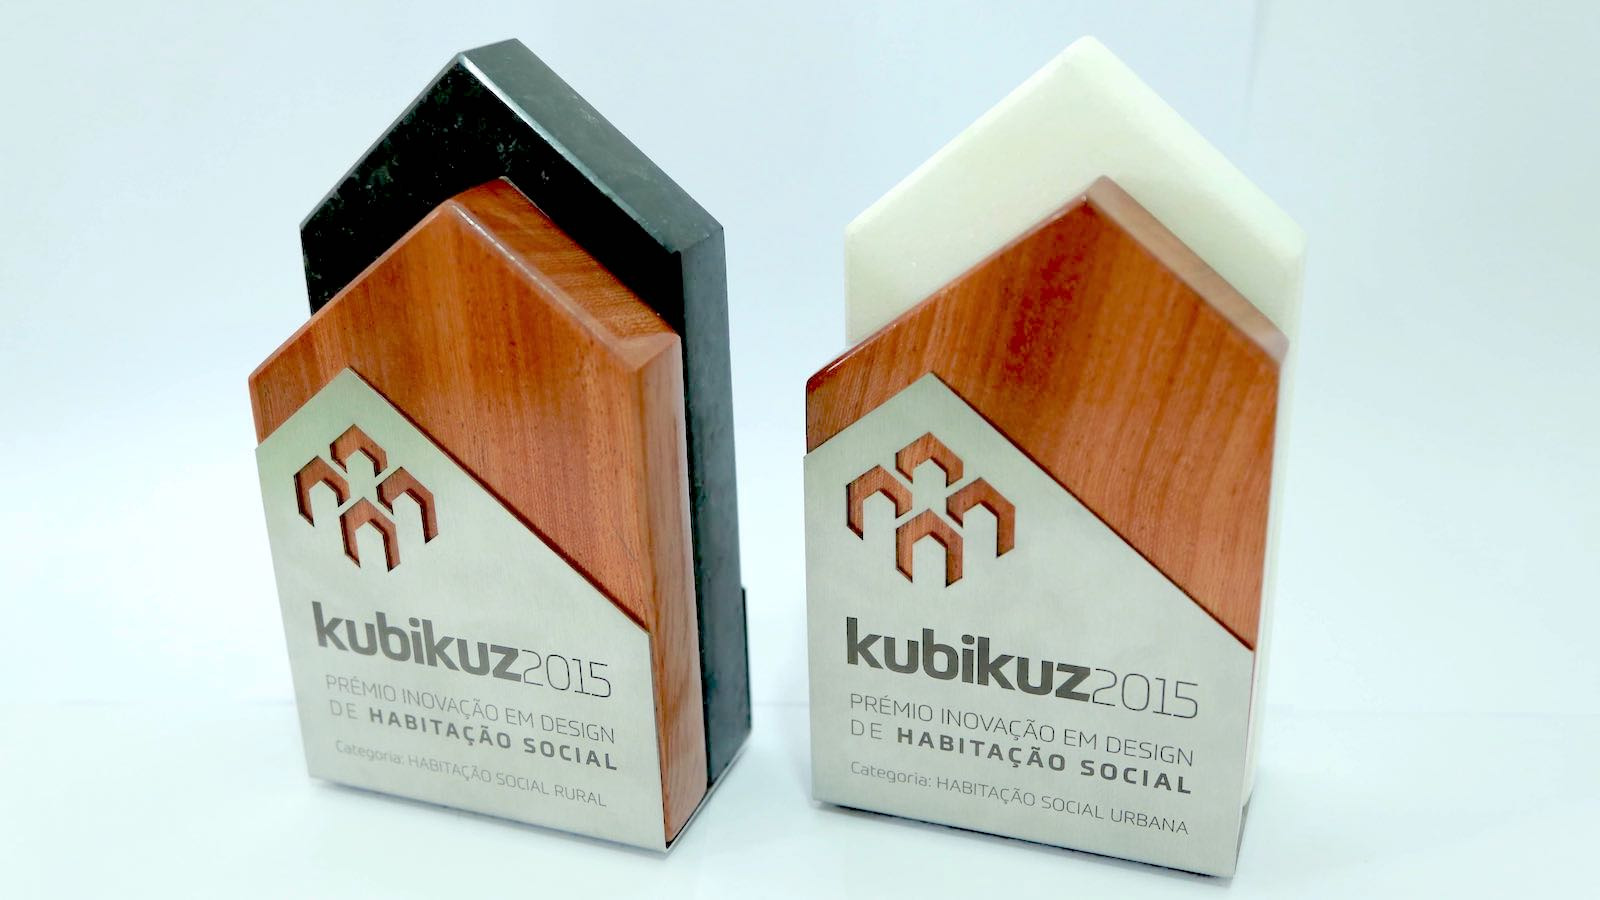 For the conception of the Kubikuz trophies, we partnered with Atelier Mulemba to come up with a way to incorporate the local traditional materials, normally use on house contraction across the country. Both pieces were created to reflect the categories